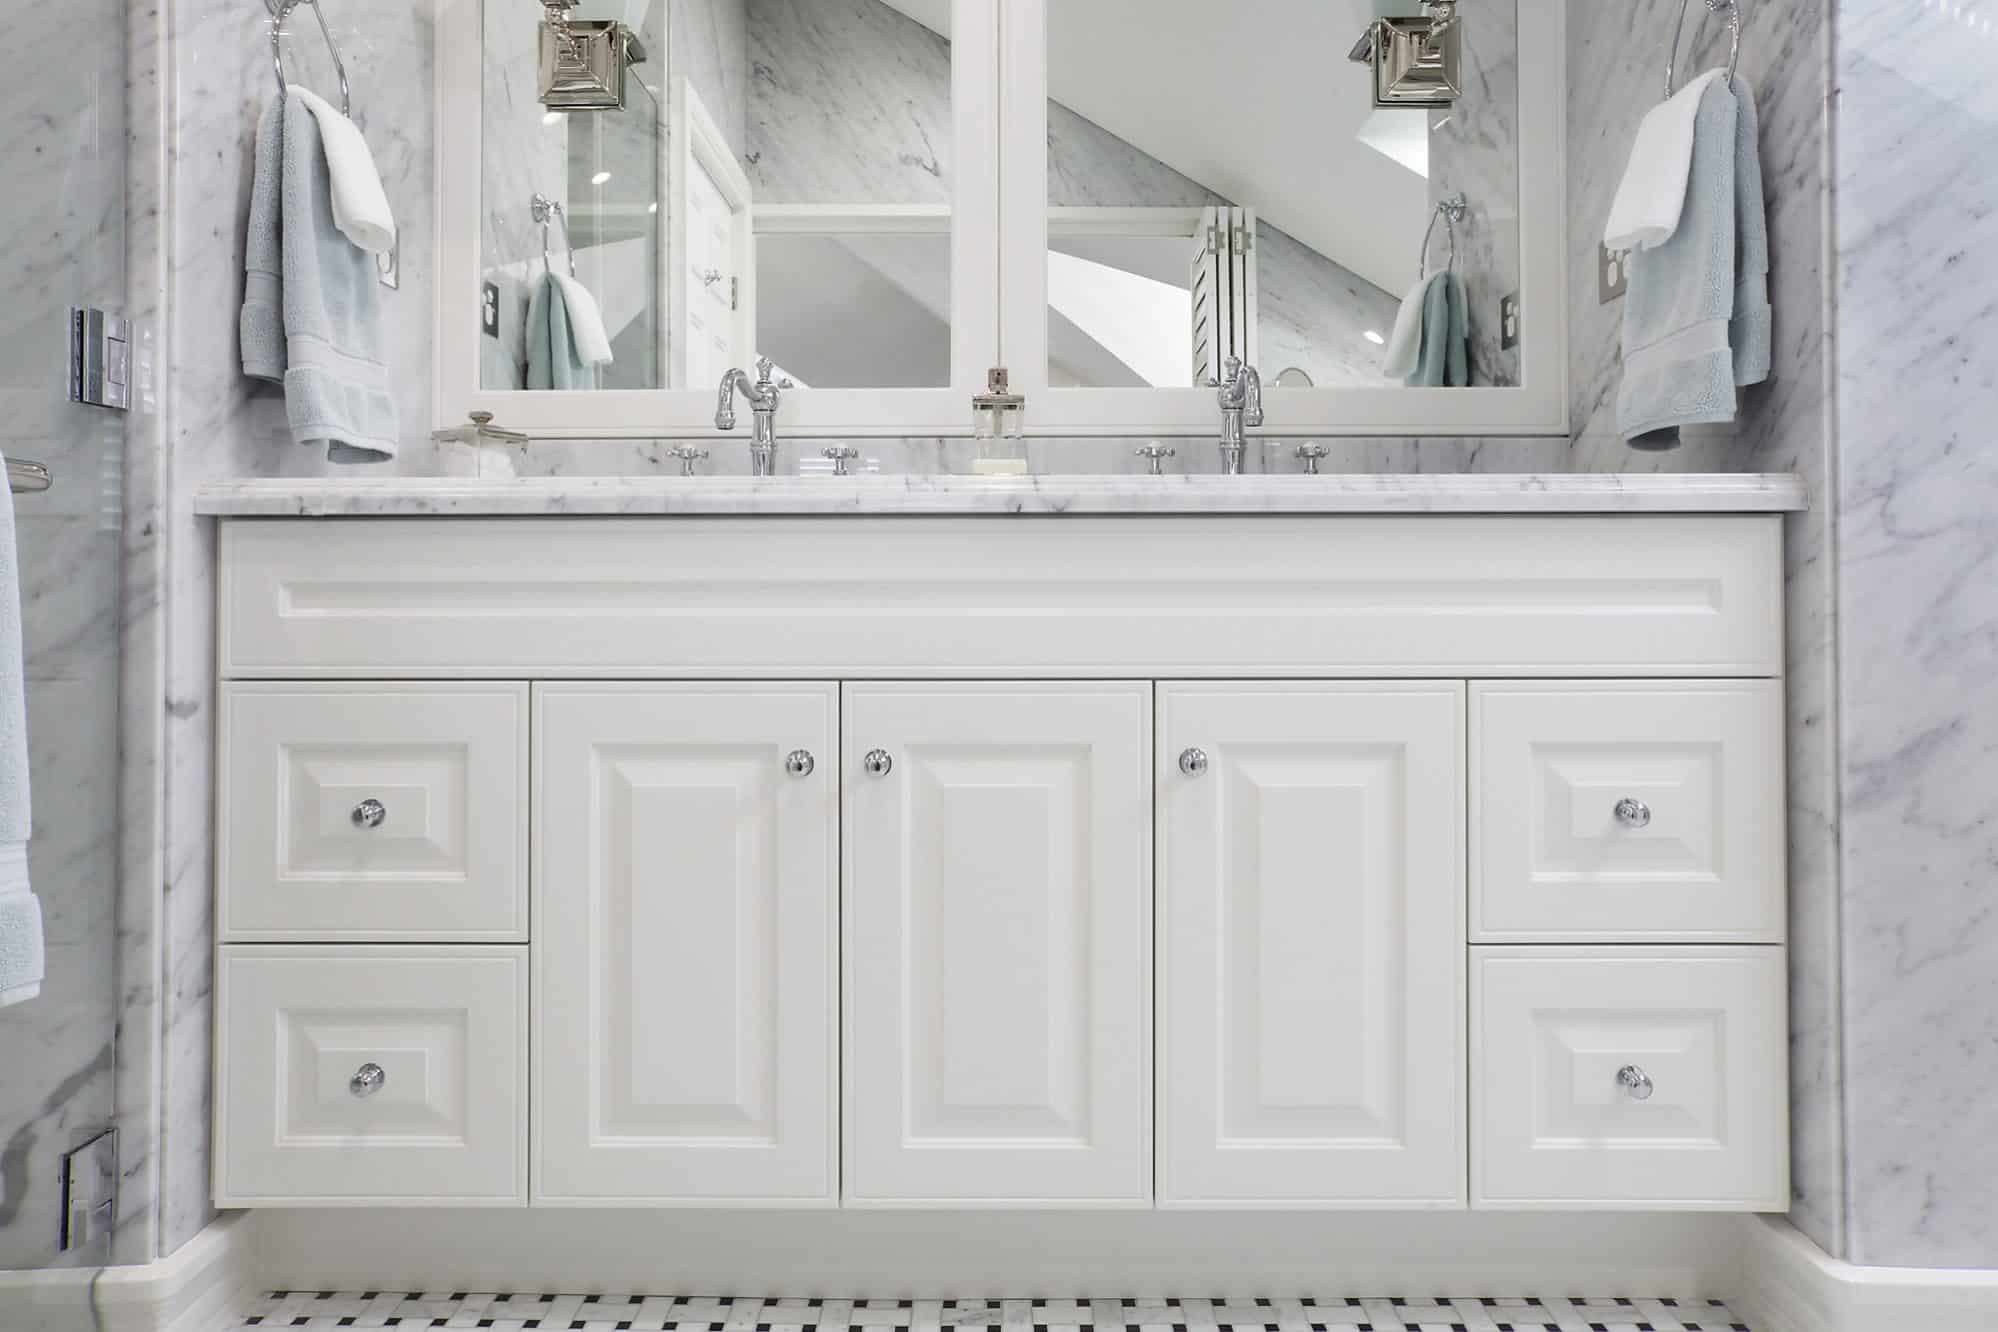 The detailed vanity unit